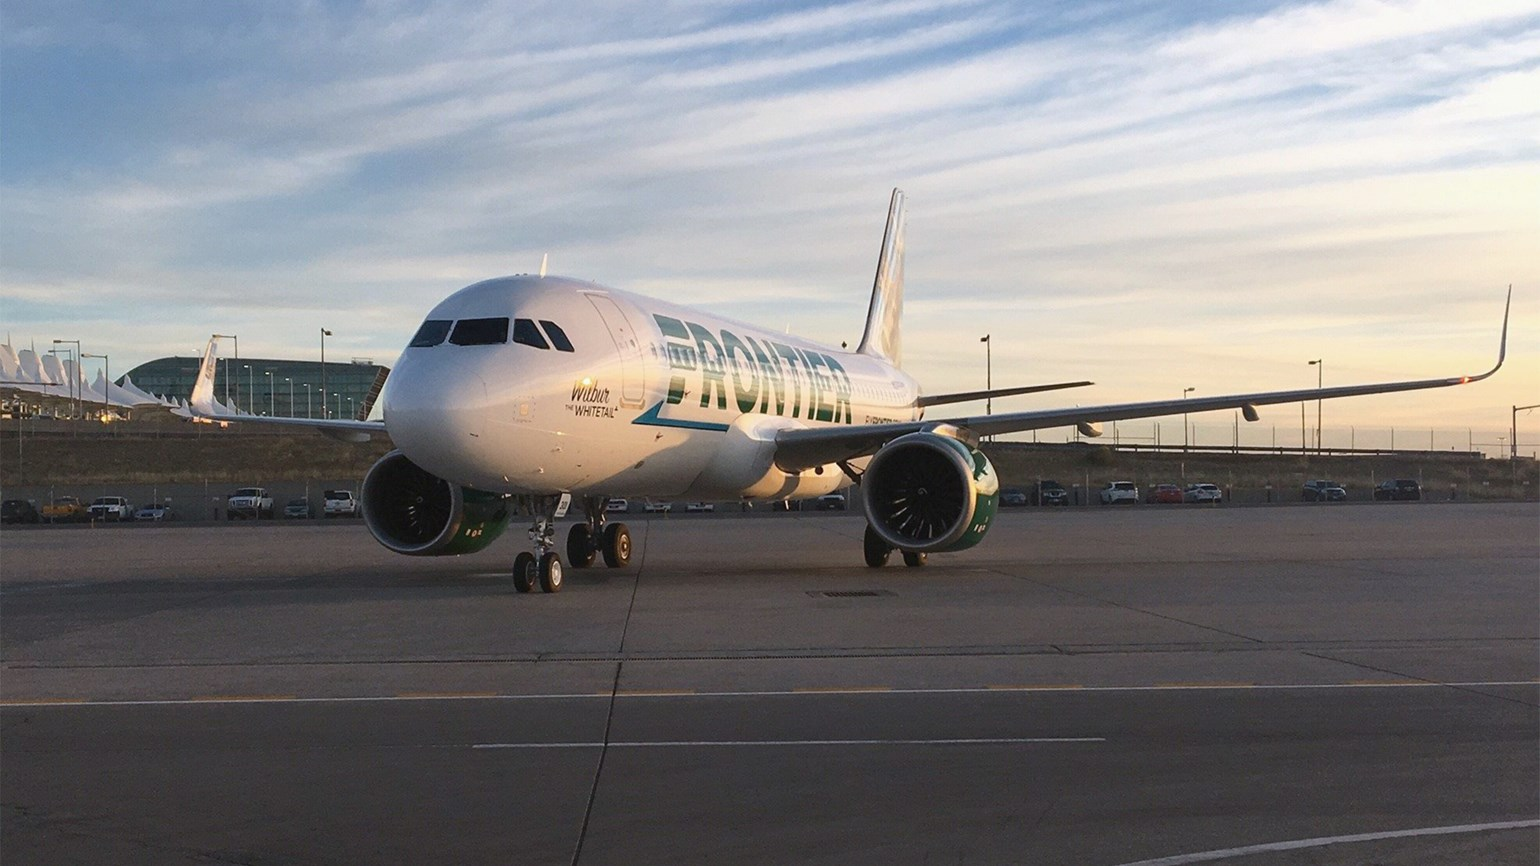 Frontier operations return to normal